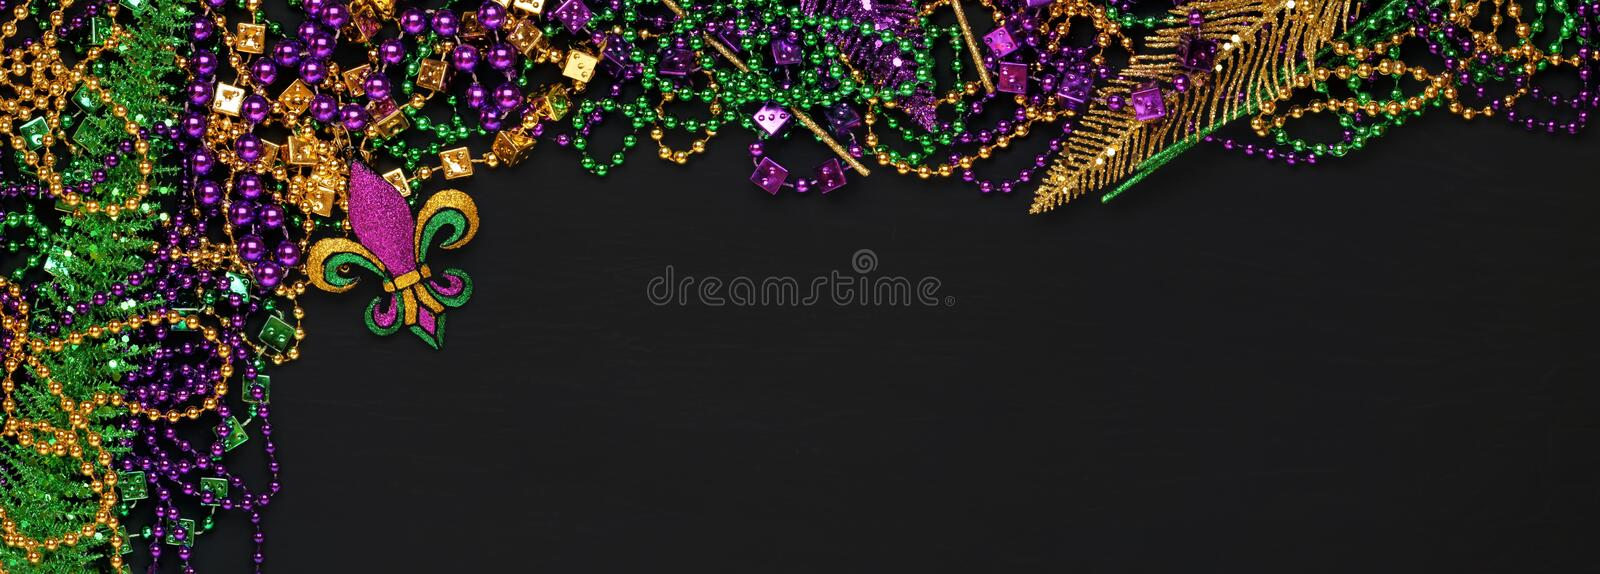 Purple, Gold, and Green Mardi Gras beads and decorations. Background stock photography